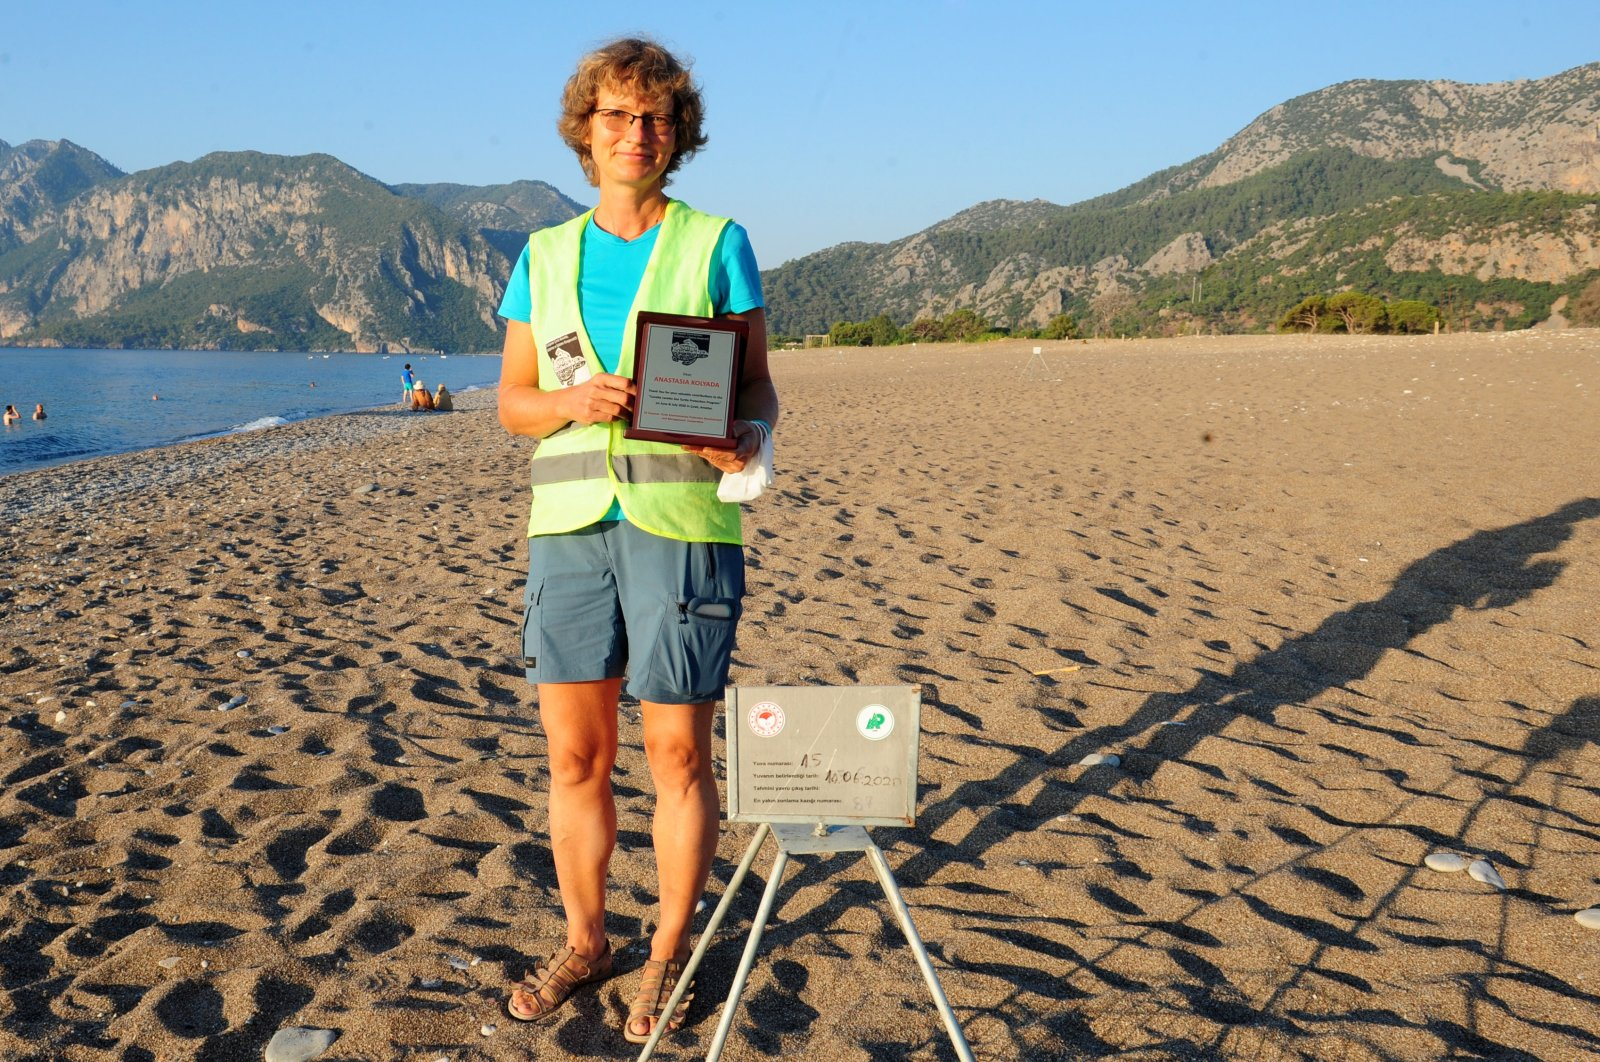 Anastasia Kolyada poses next to a Caretta caretta nest on Çıralı Beach, Antalya, July 22, 2020. (DHA Photo)